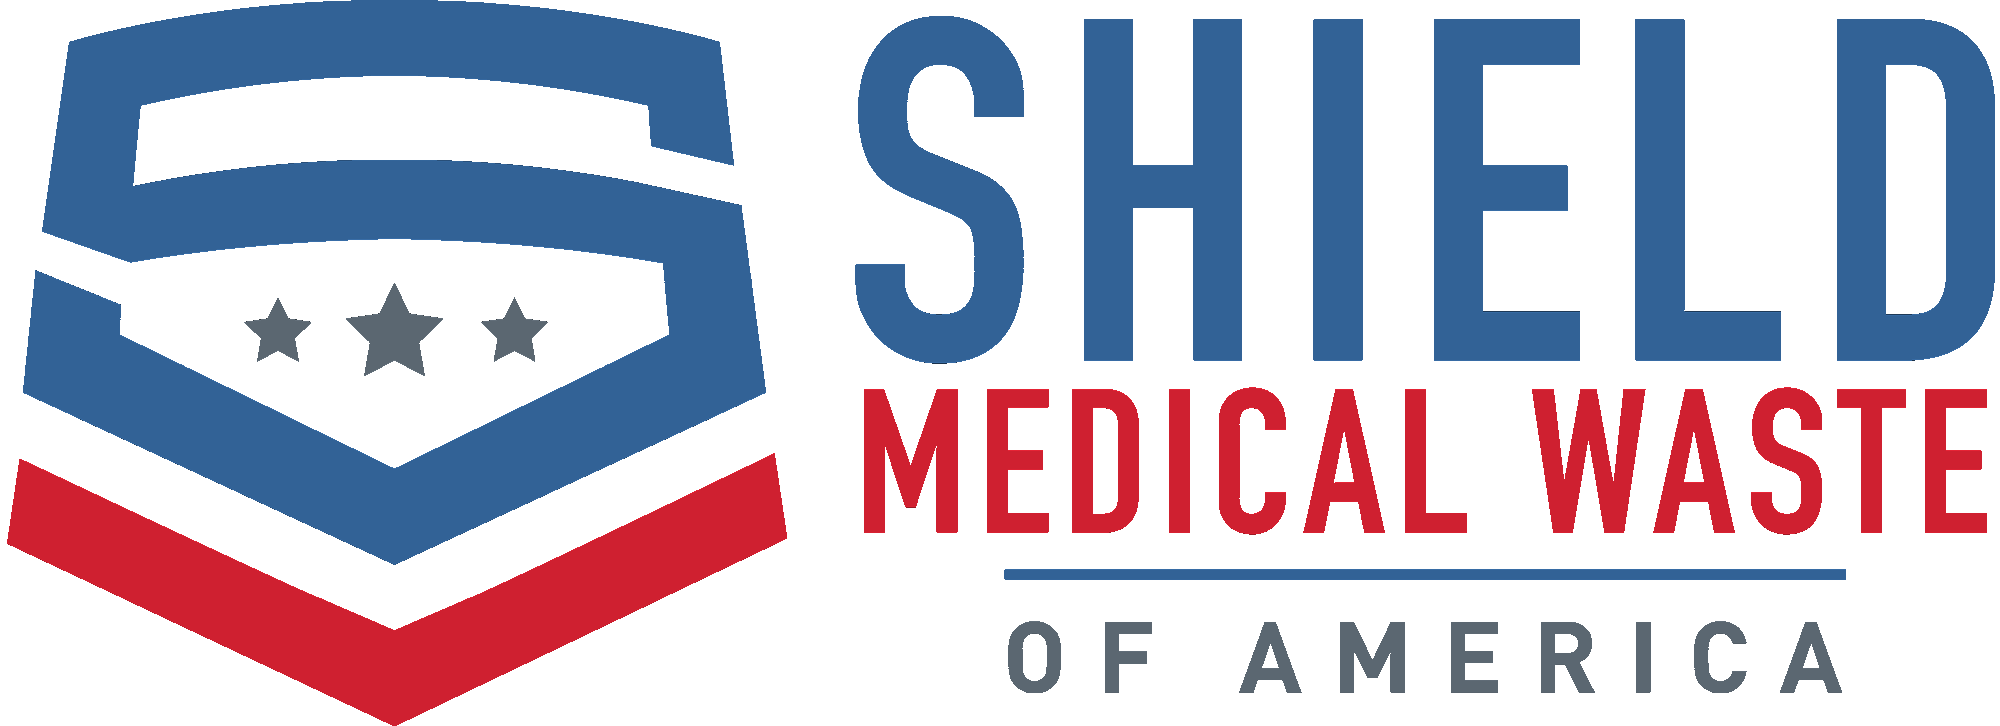 Shield Medical Waste of America